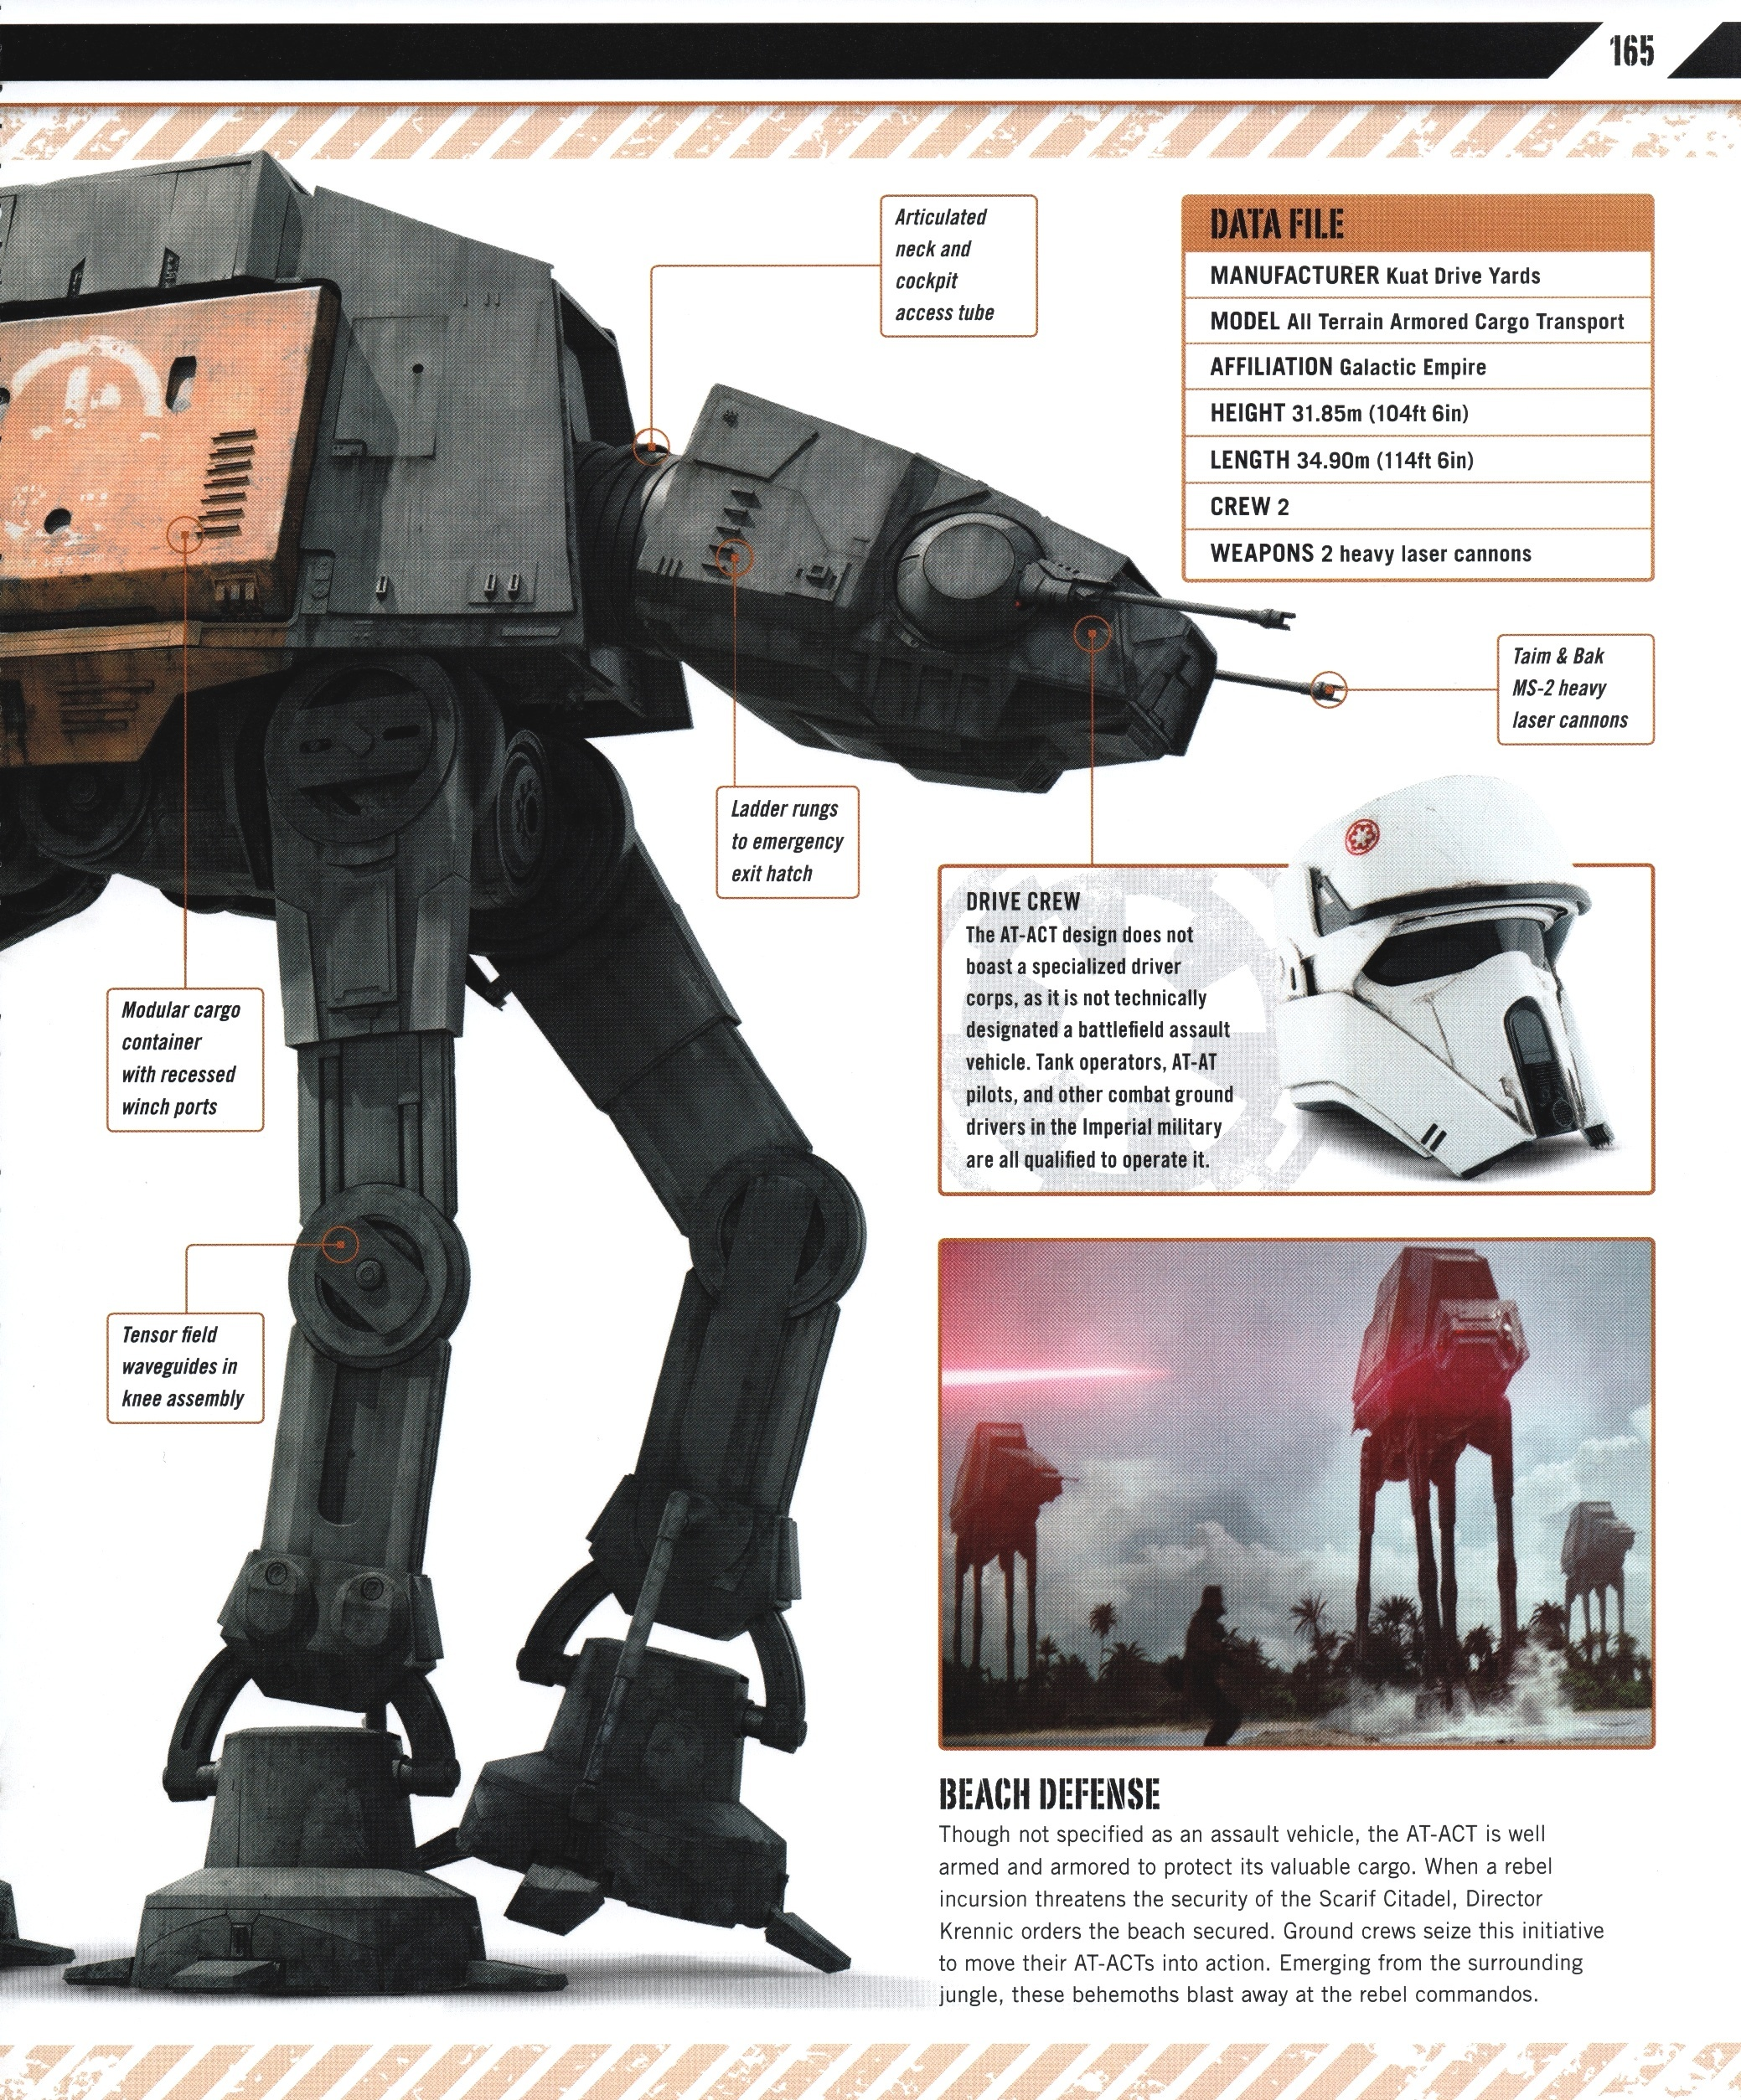 Rogue One Ultimate Visual Guide (b0bafett_Empire) p165